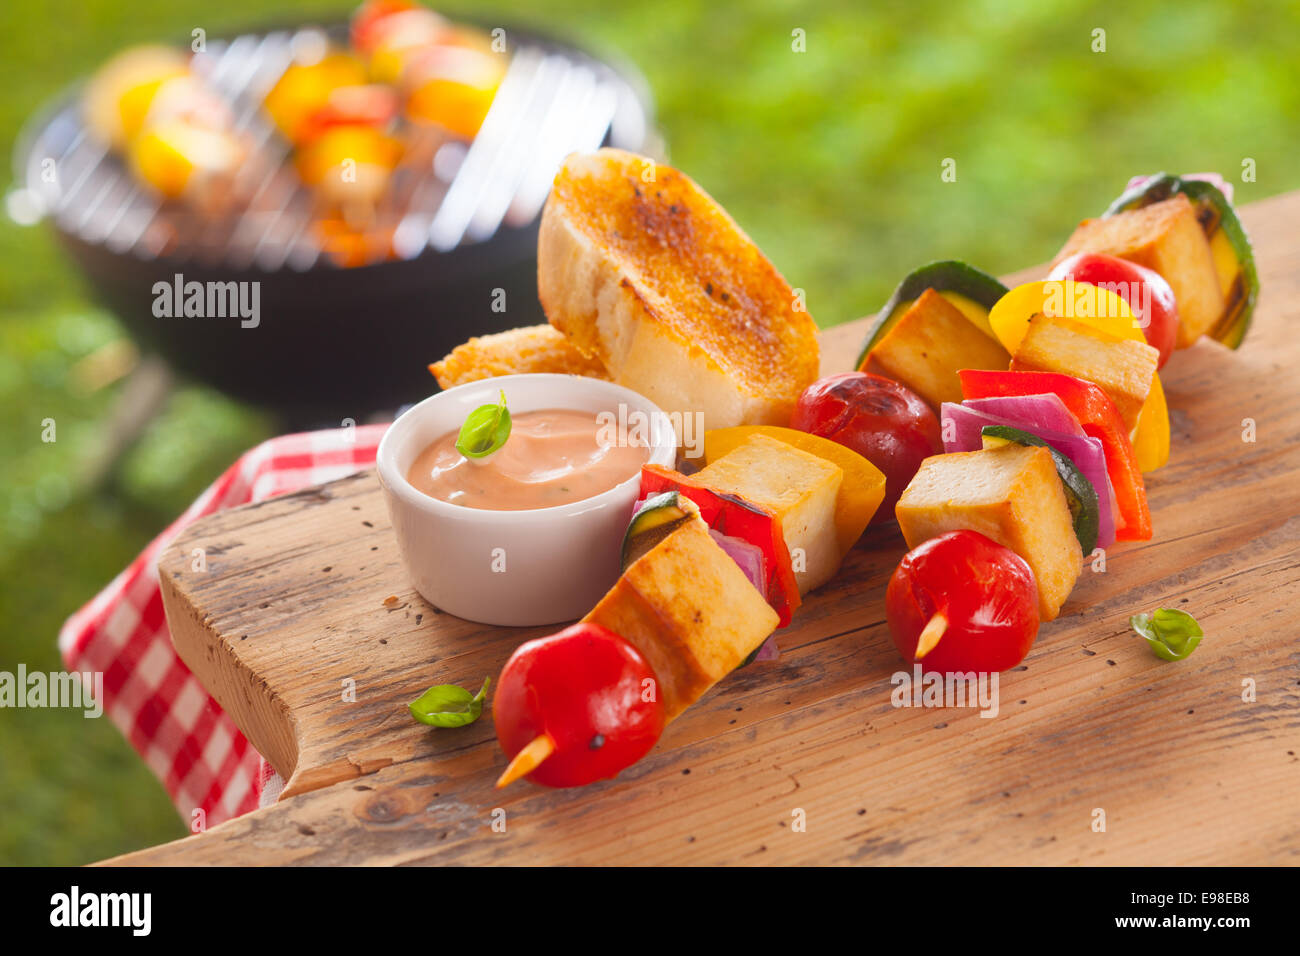 Healthy picnic lunch at a summer barbecue with grilled smoked Tofu and vegetable kebabs served with a savory sauce - Stock Image